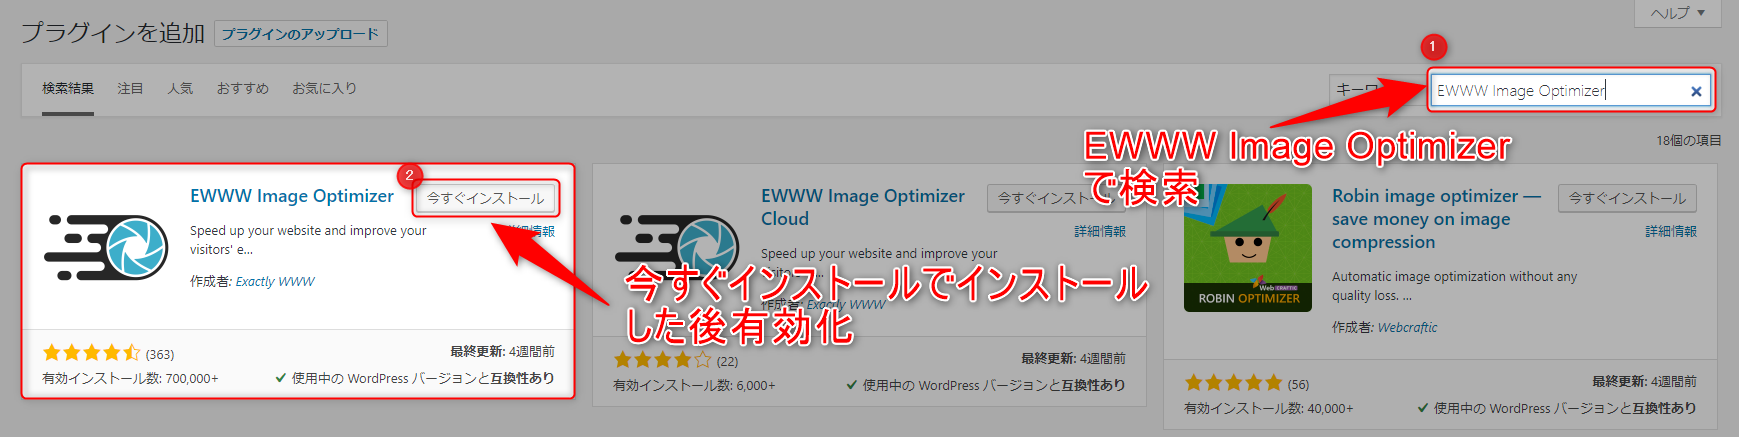 EWWW Image Optimizer - インストール